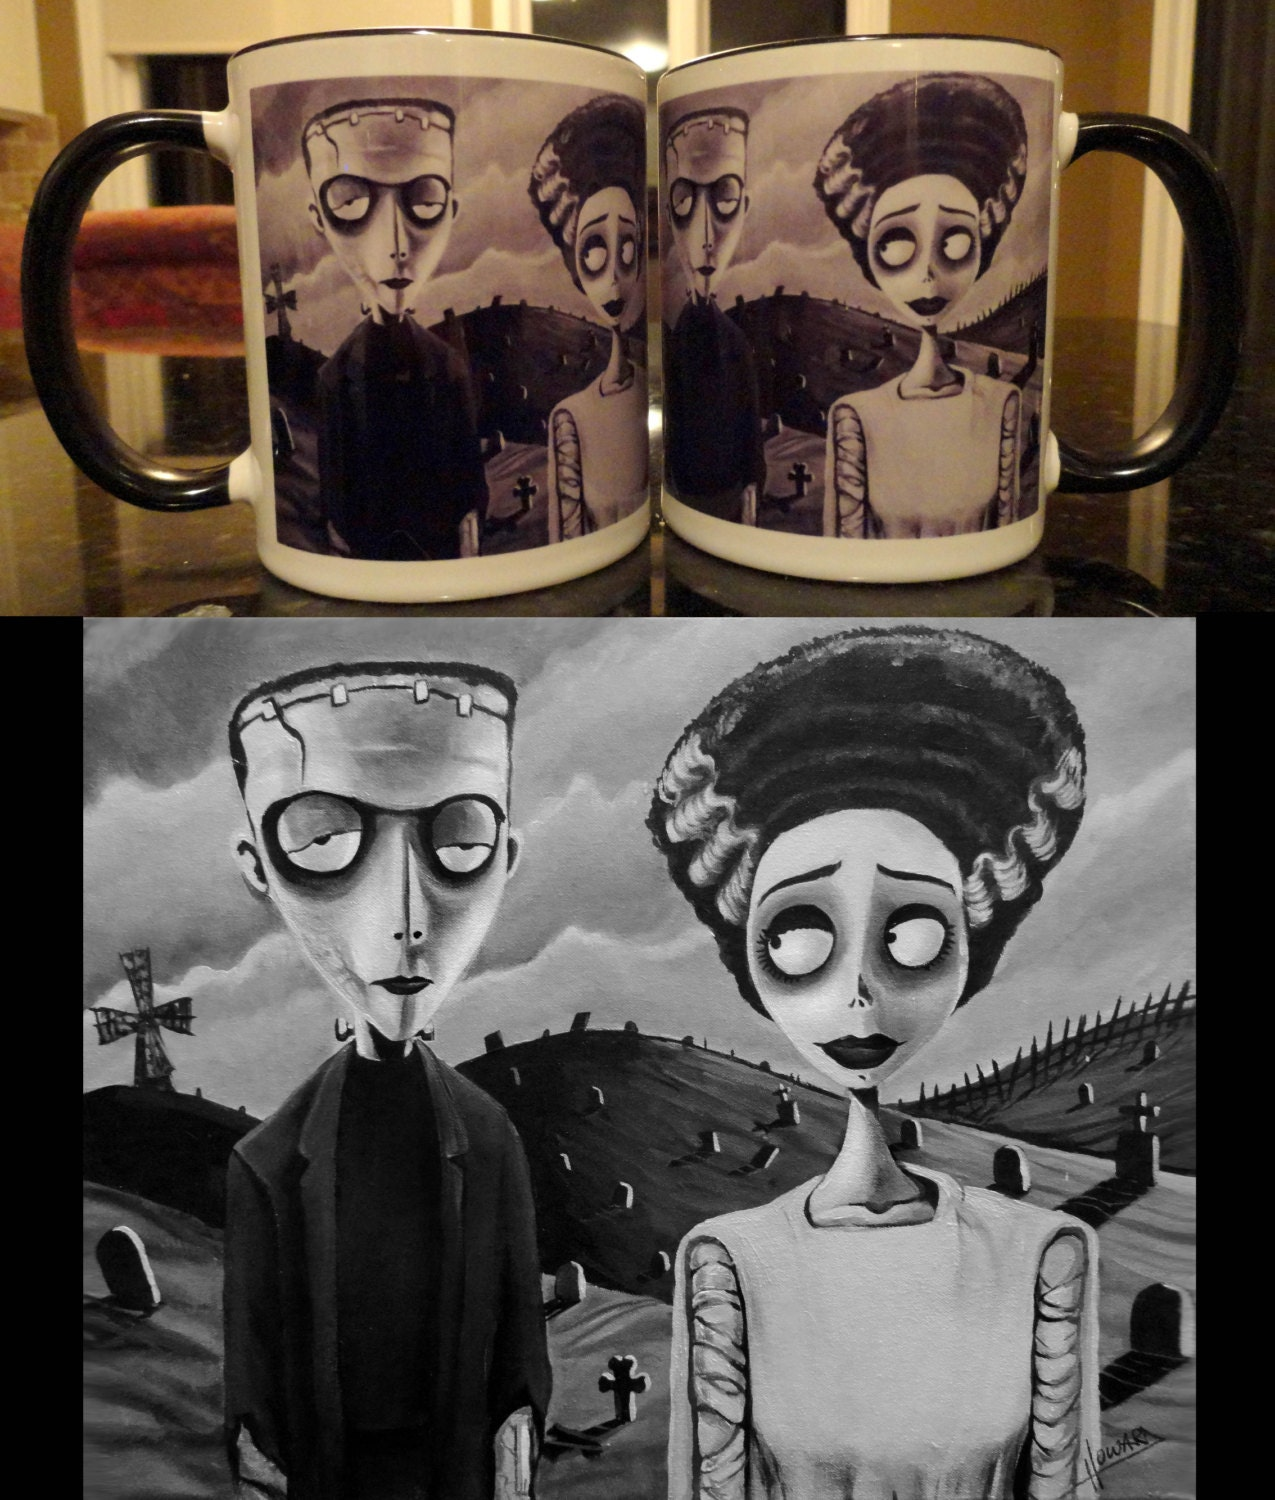 corpse bride of frankenstein art coffee mug tim burton style